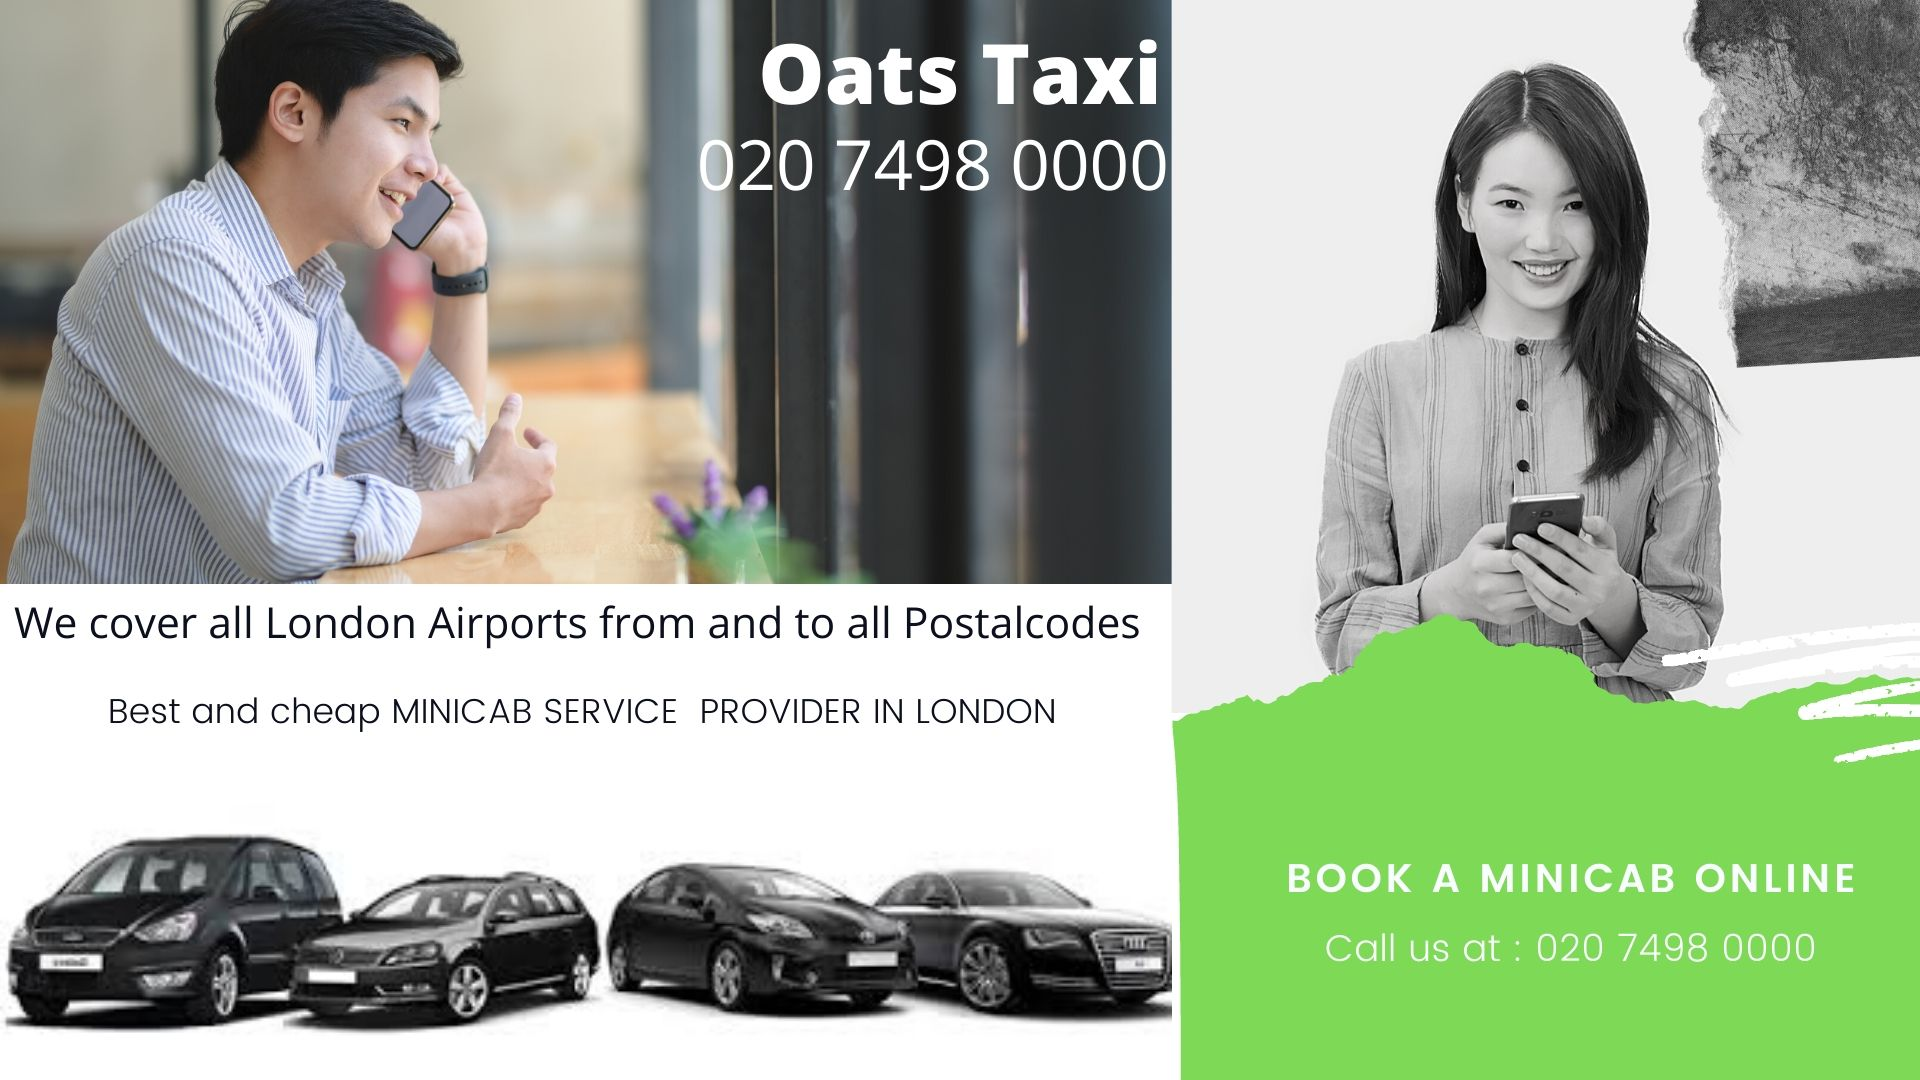 Minicab Office Near FALCON LANE, Battersea SW11, Minicab From Battersea SW11 To Gatwick Airport